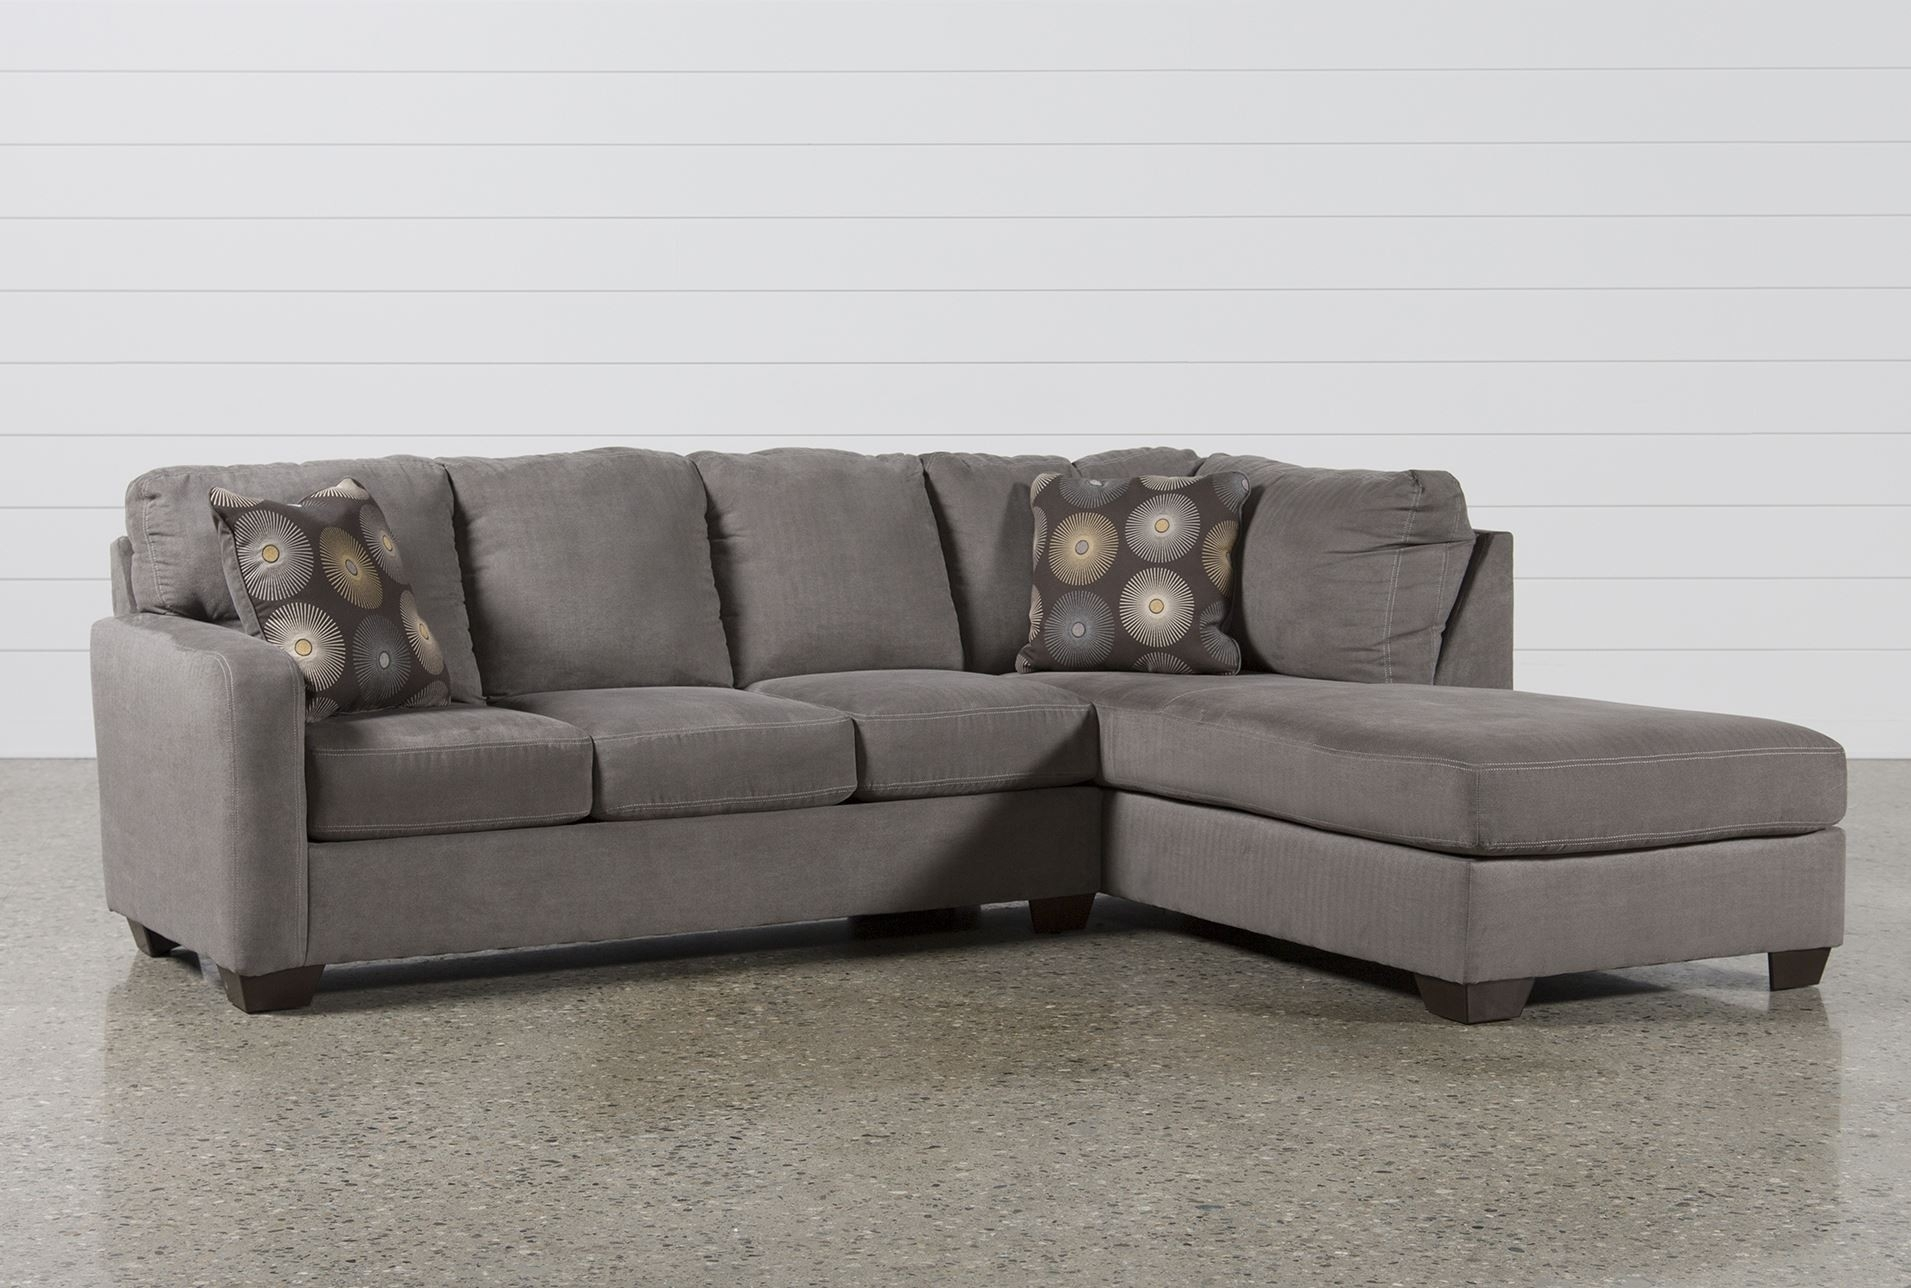 Lovely 2 Piece Sectional Sofa - Buildsimplehome regarding Evan 2 Piece Sectionals With Raf Chaise (Image 23 of 30)